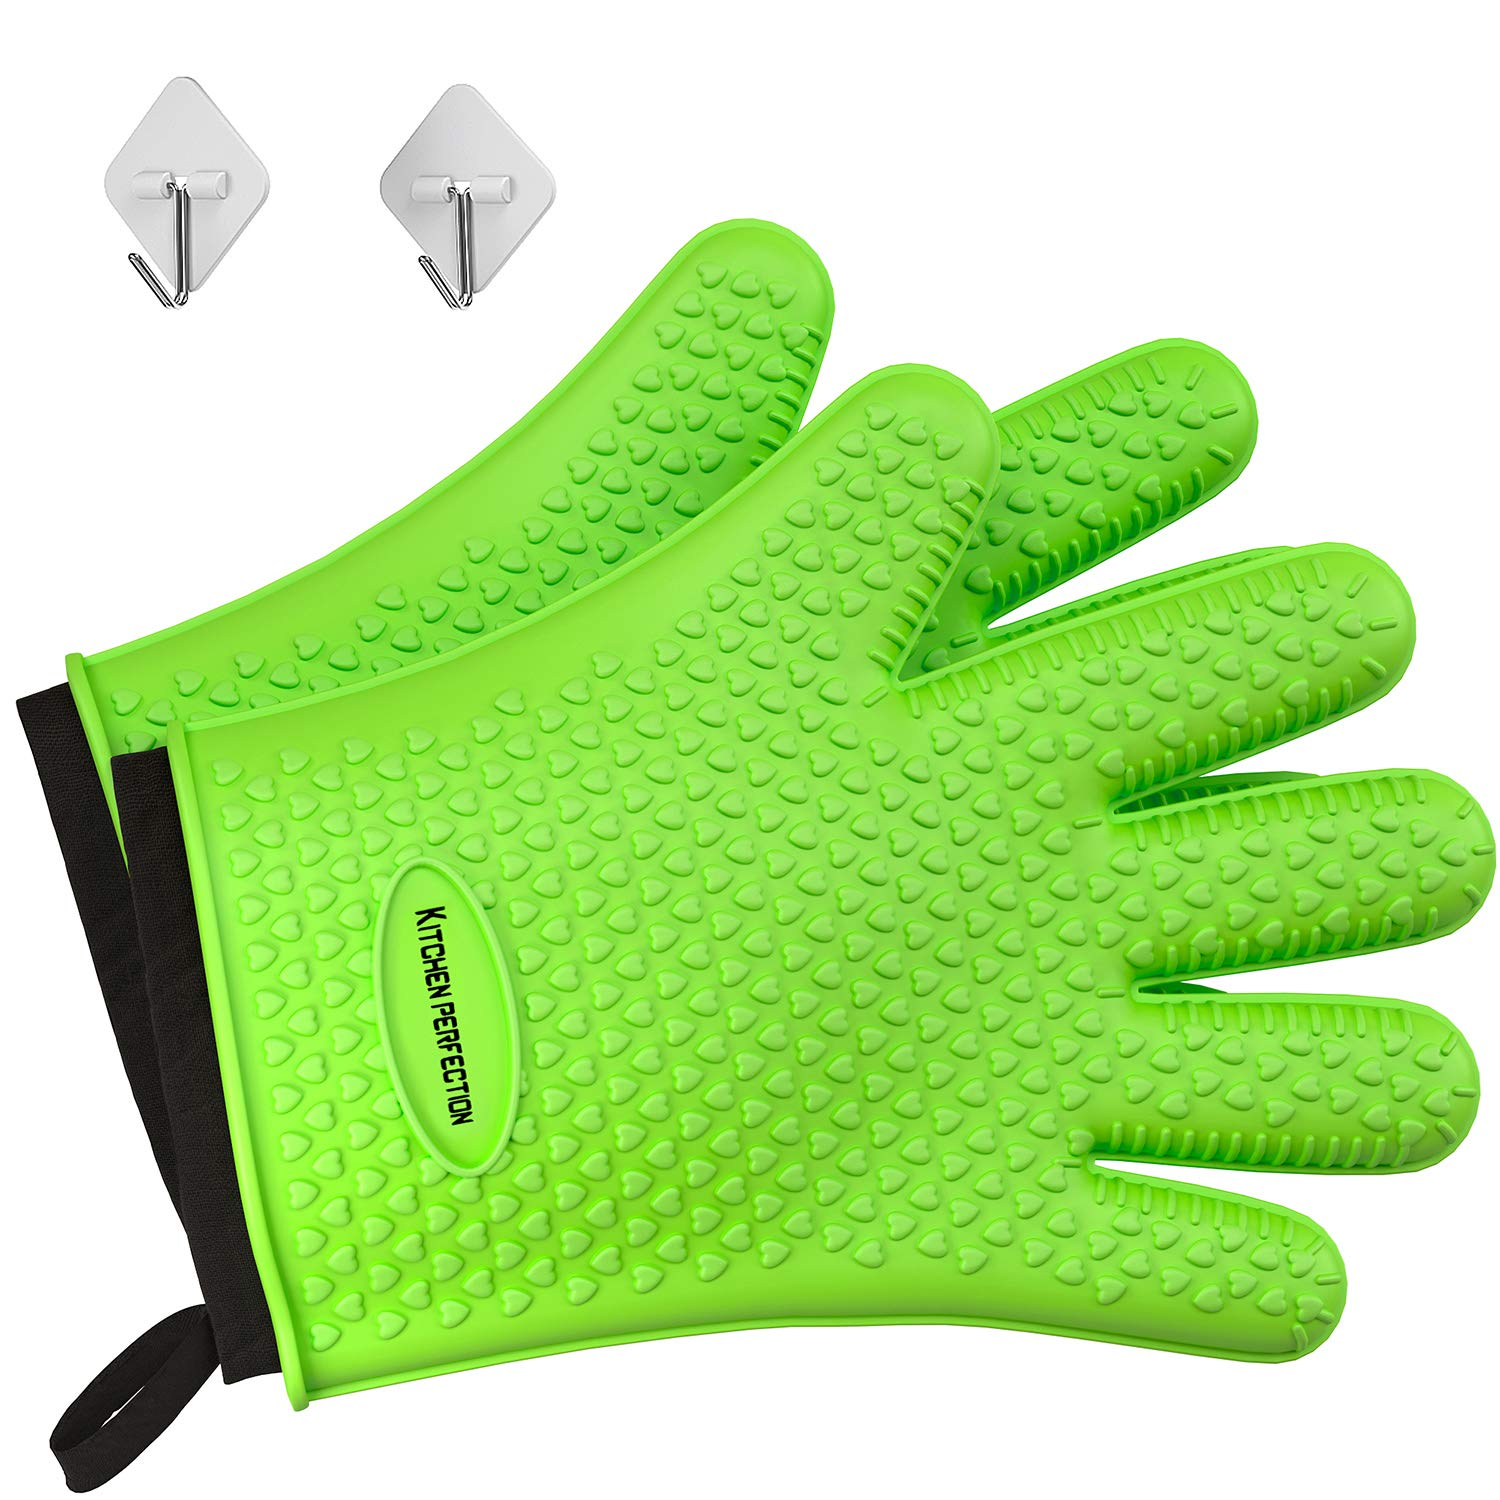 No.1 Set of Silicone Smoker Oven Gloves - Extreme Heat Resistant Washable Mitts for Safe Cooking Baking & Frying at The Kitchen,BBQ Pit & Grill. Superior Value Set + 3 Bonuses (Green)